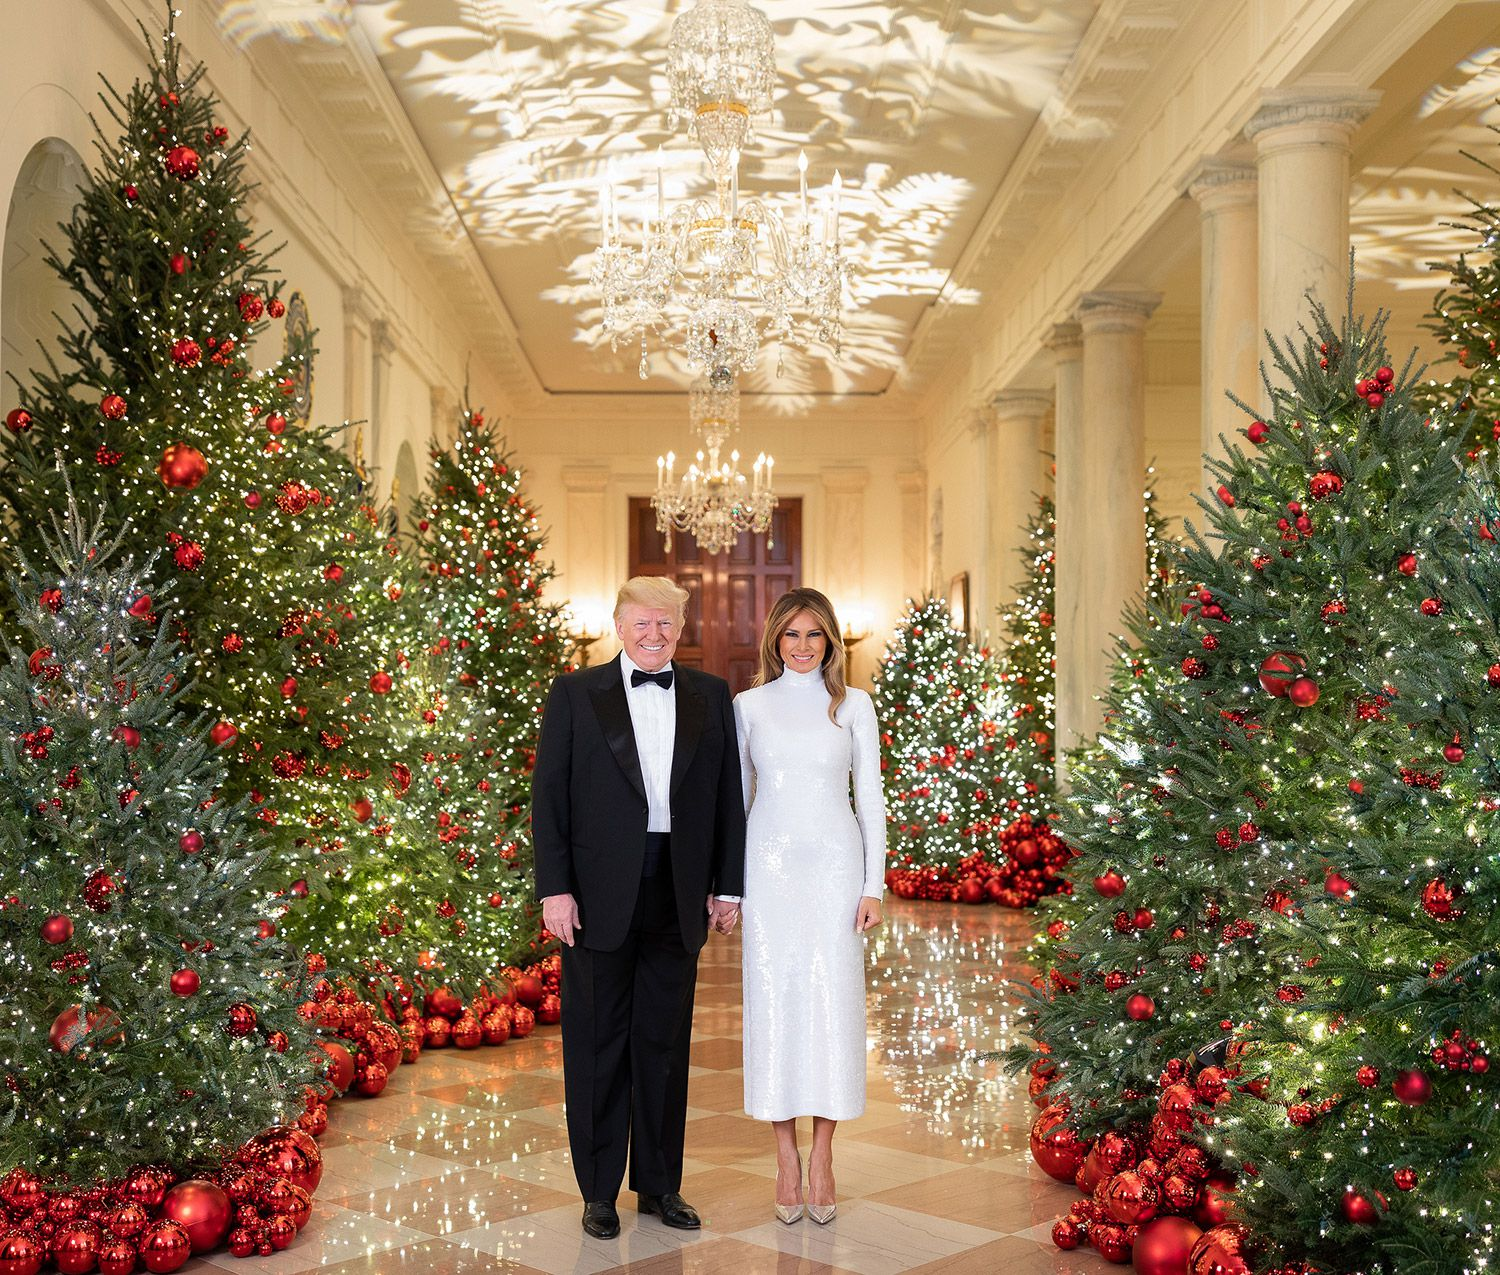 Why does the White House Christmas portrait look so weird